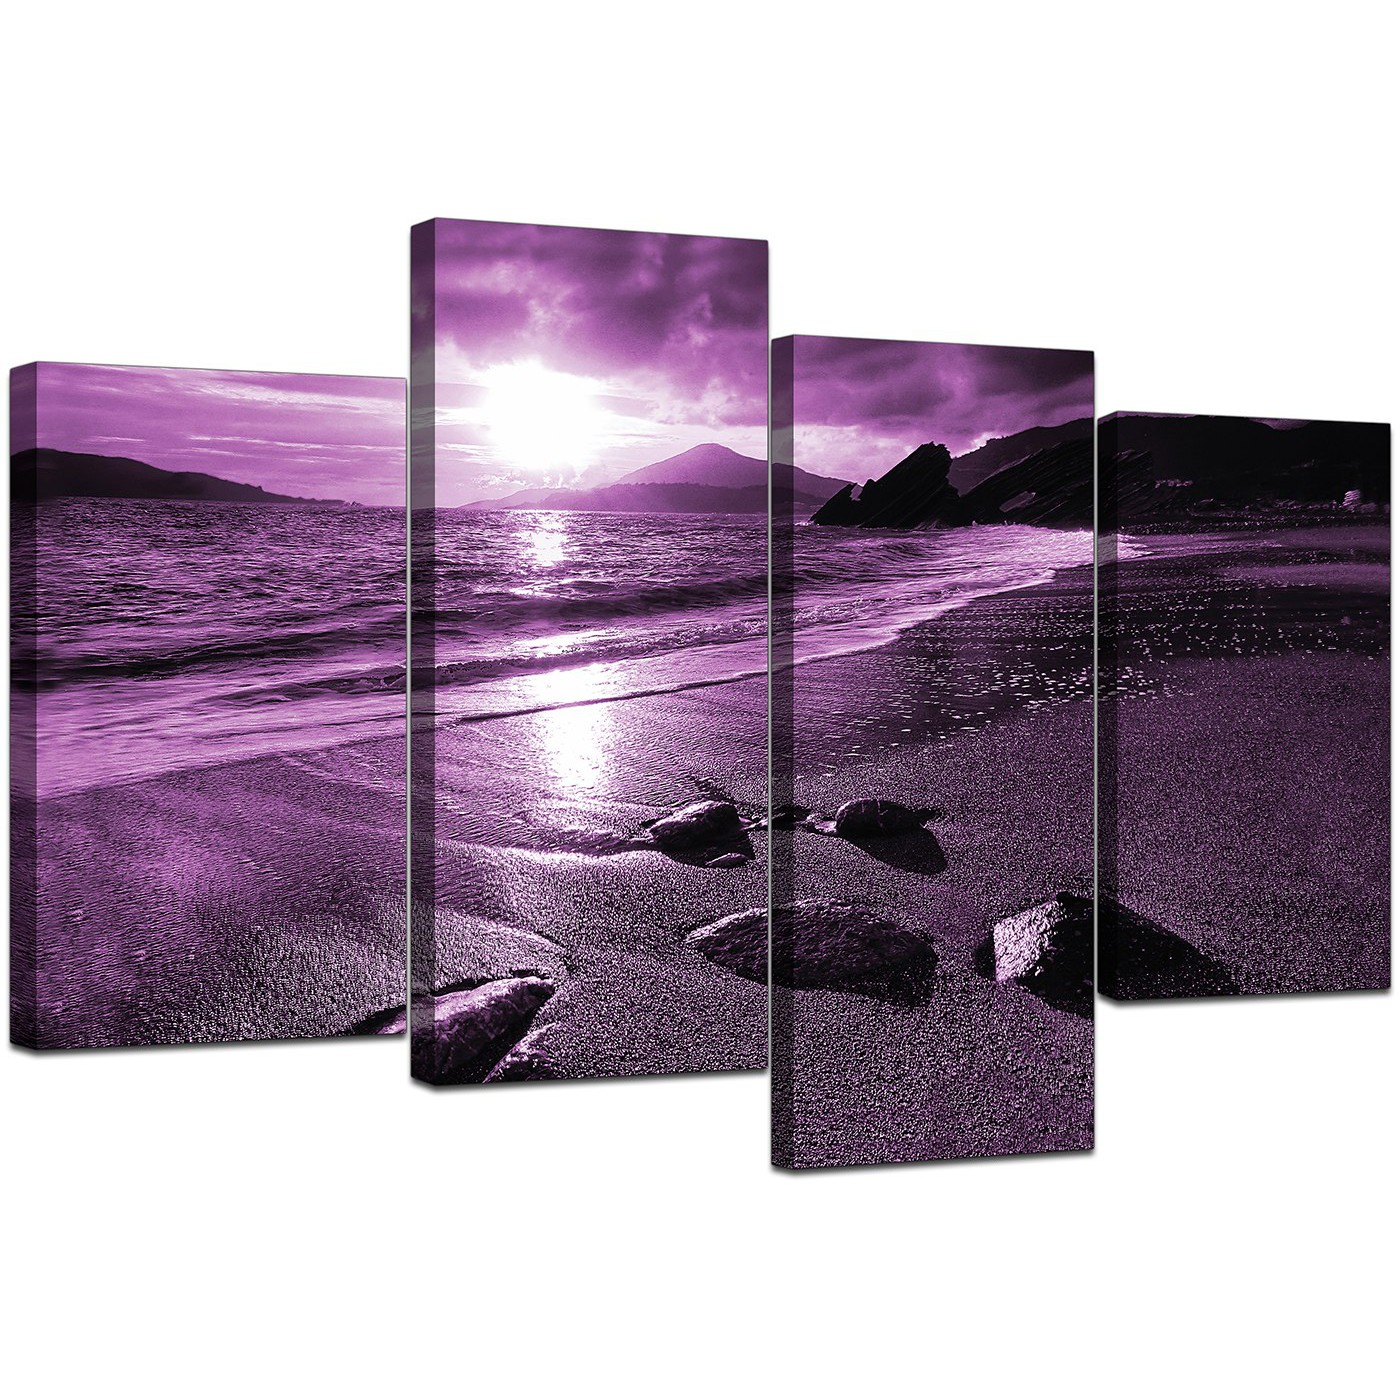 Attirant Display Gallery Item 5; 4 Piece Set Of Living Room Purple Canvas Picture  Display Gallery Item 6